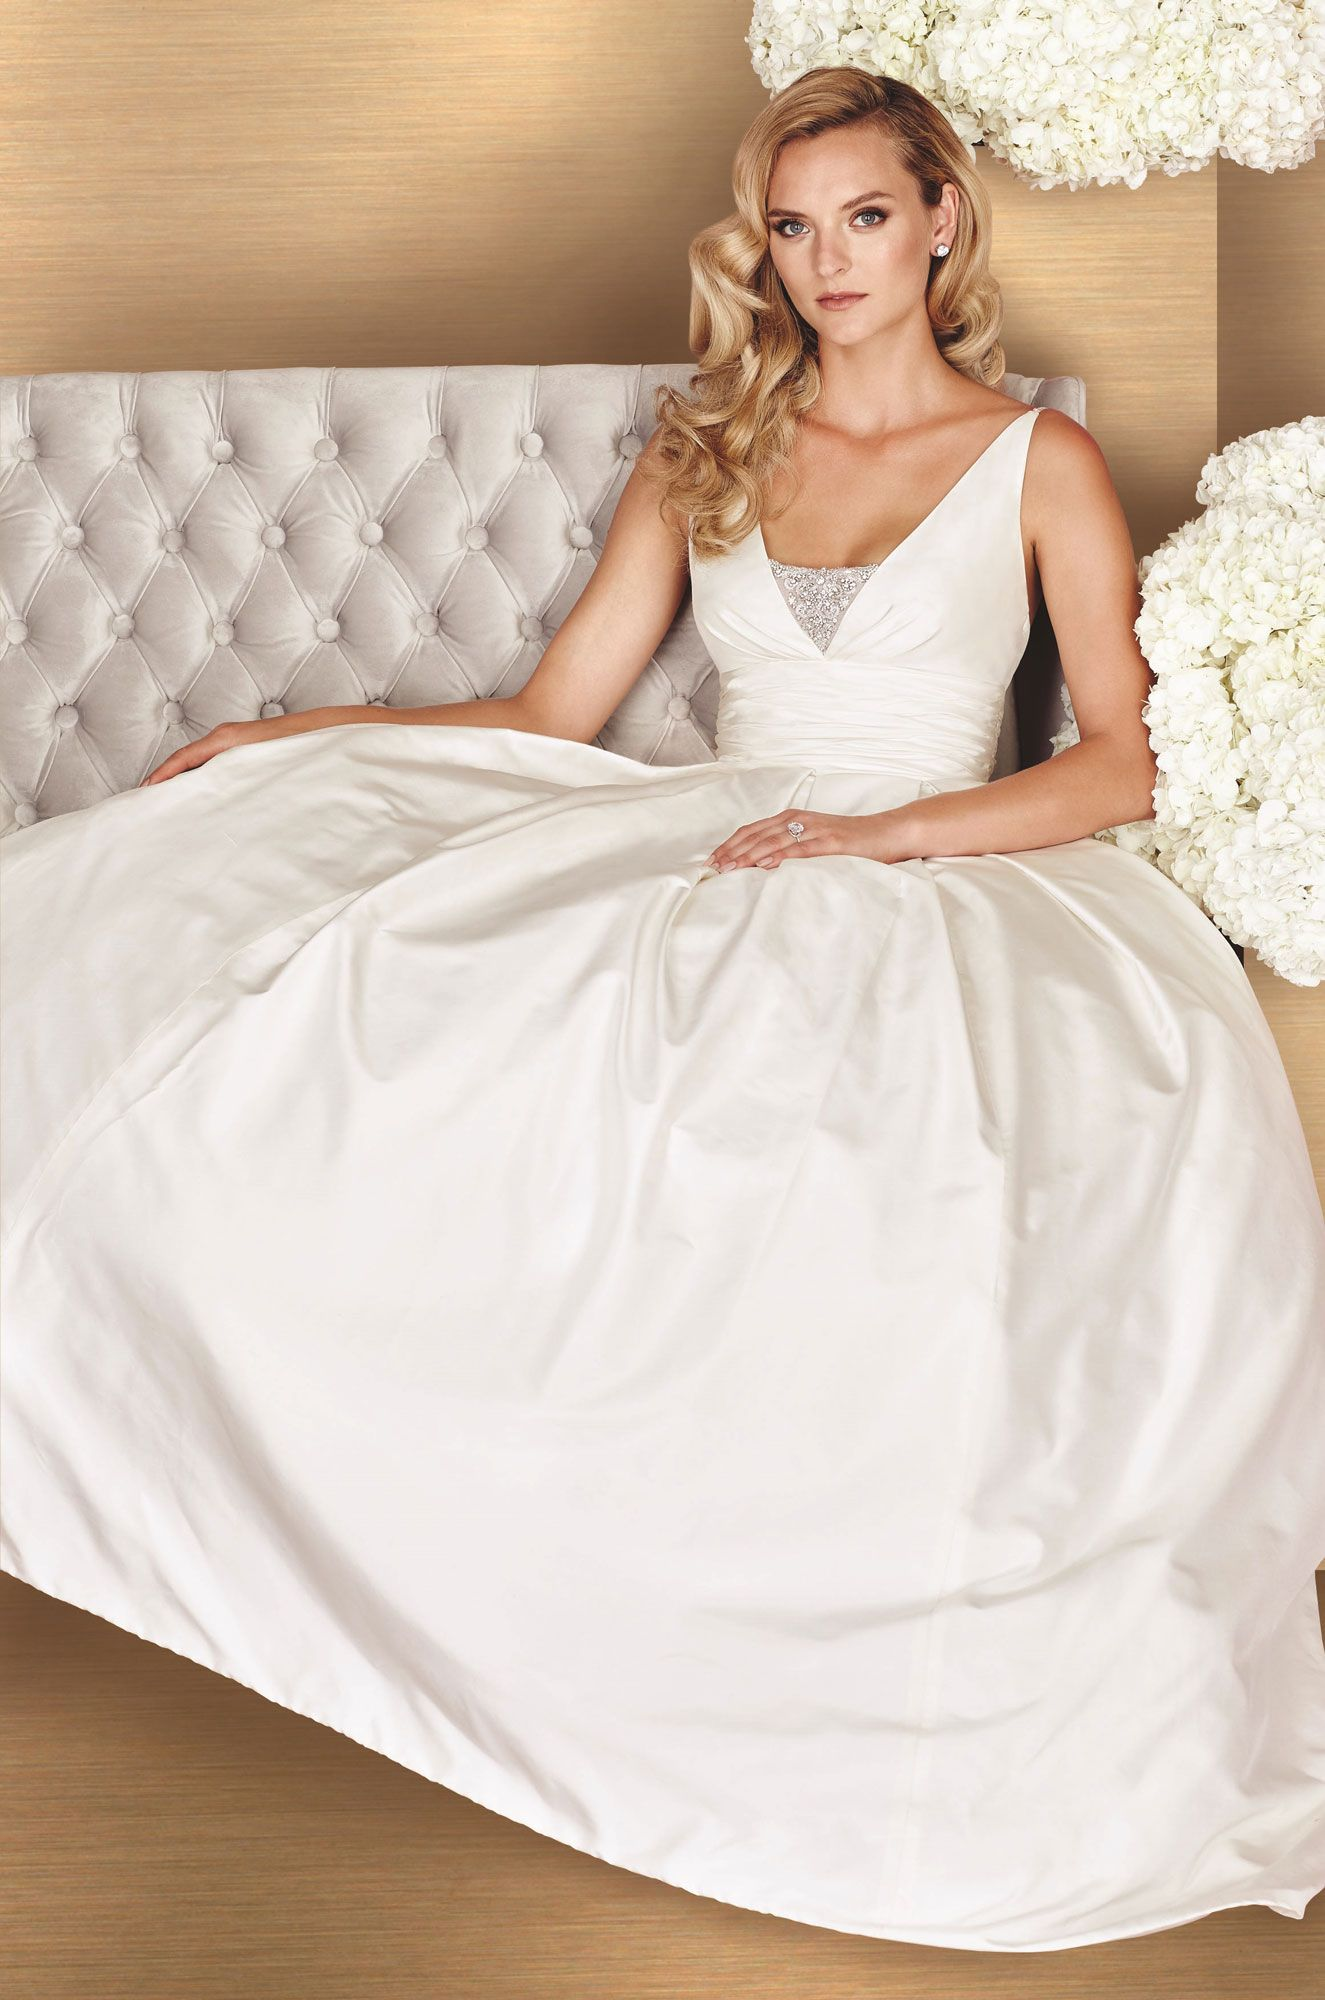 Cathedral wedding dress  Full Skirt Wedding Dress  Style   Paloma blanca Wedding